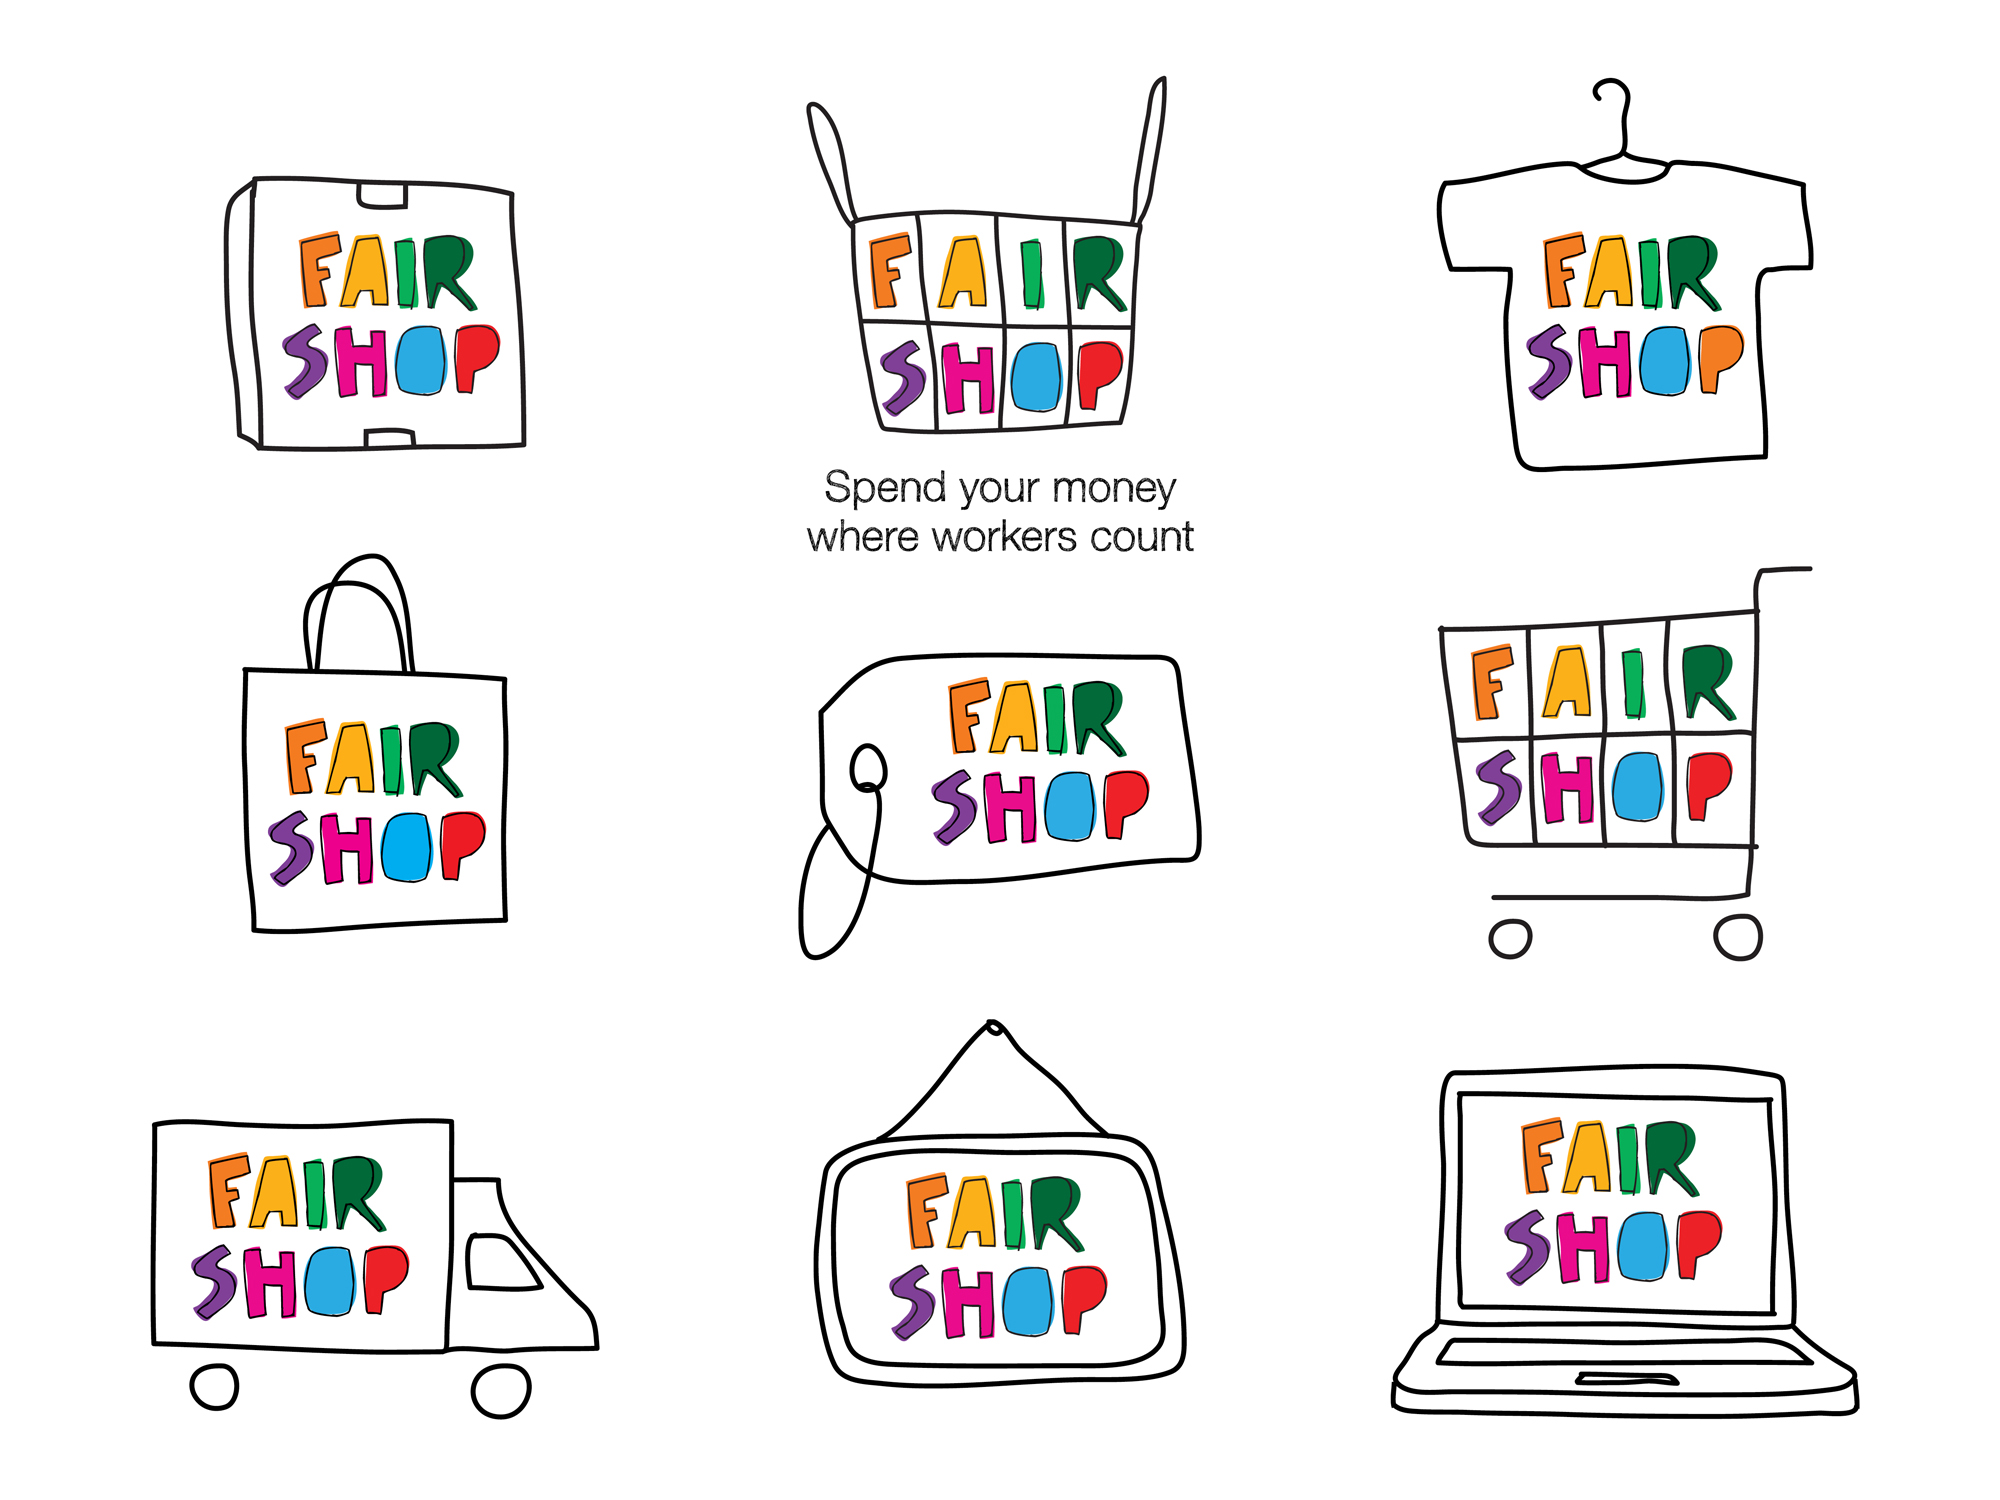 Cover image: Fair Shop Identity (2013)